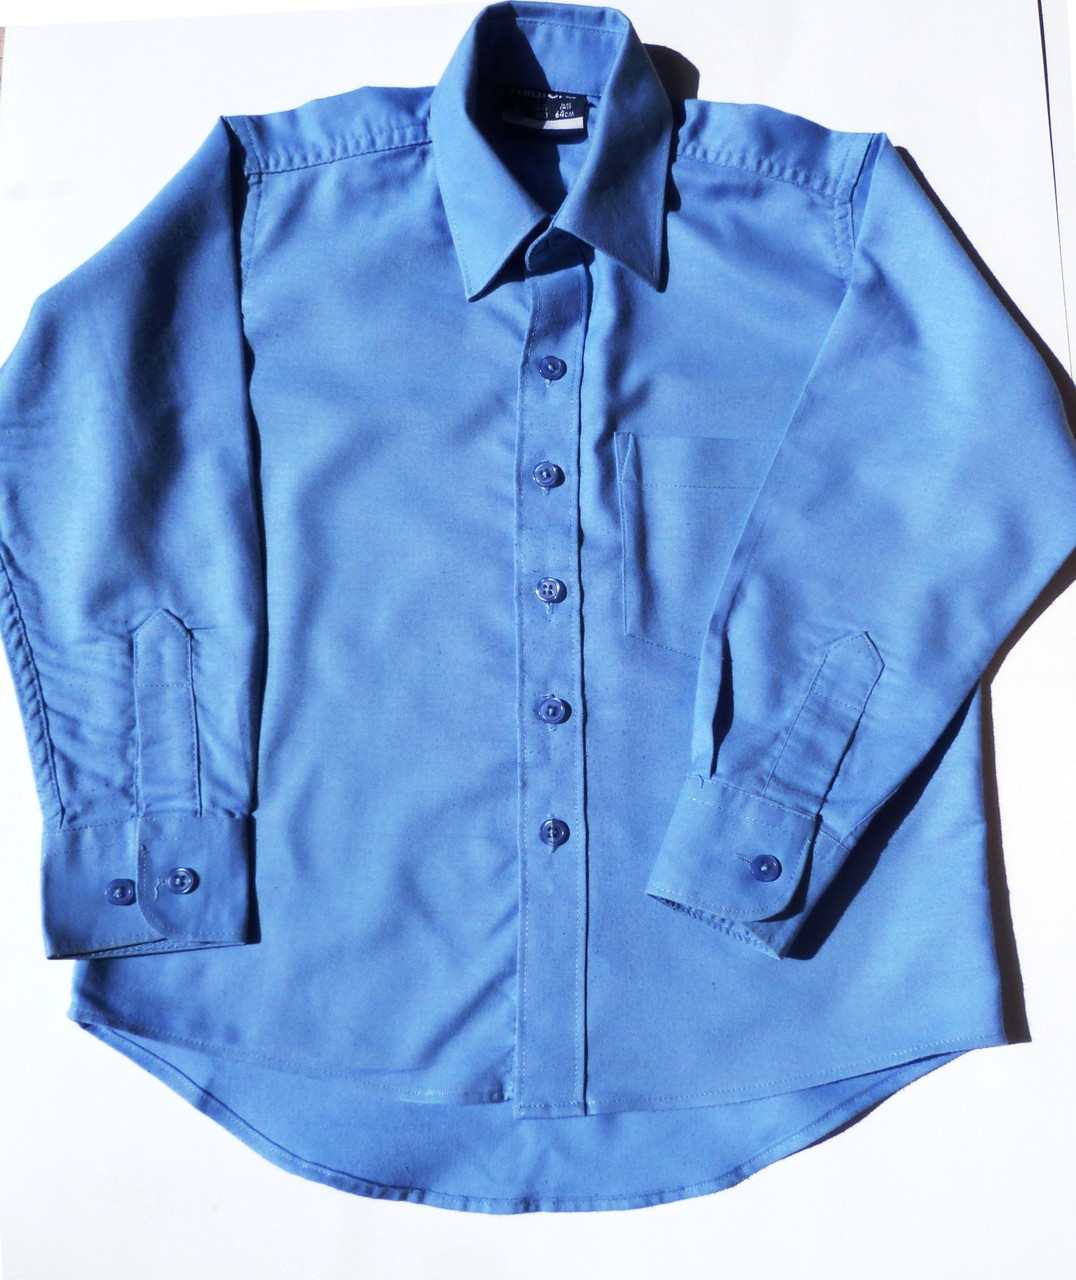 ecefbe41b51eb9 Midford Boys Long Sleeve Blue Shirt Brushed Cotton - Dressed For School